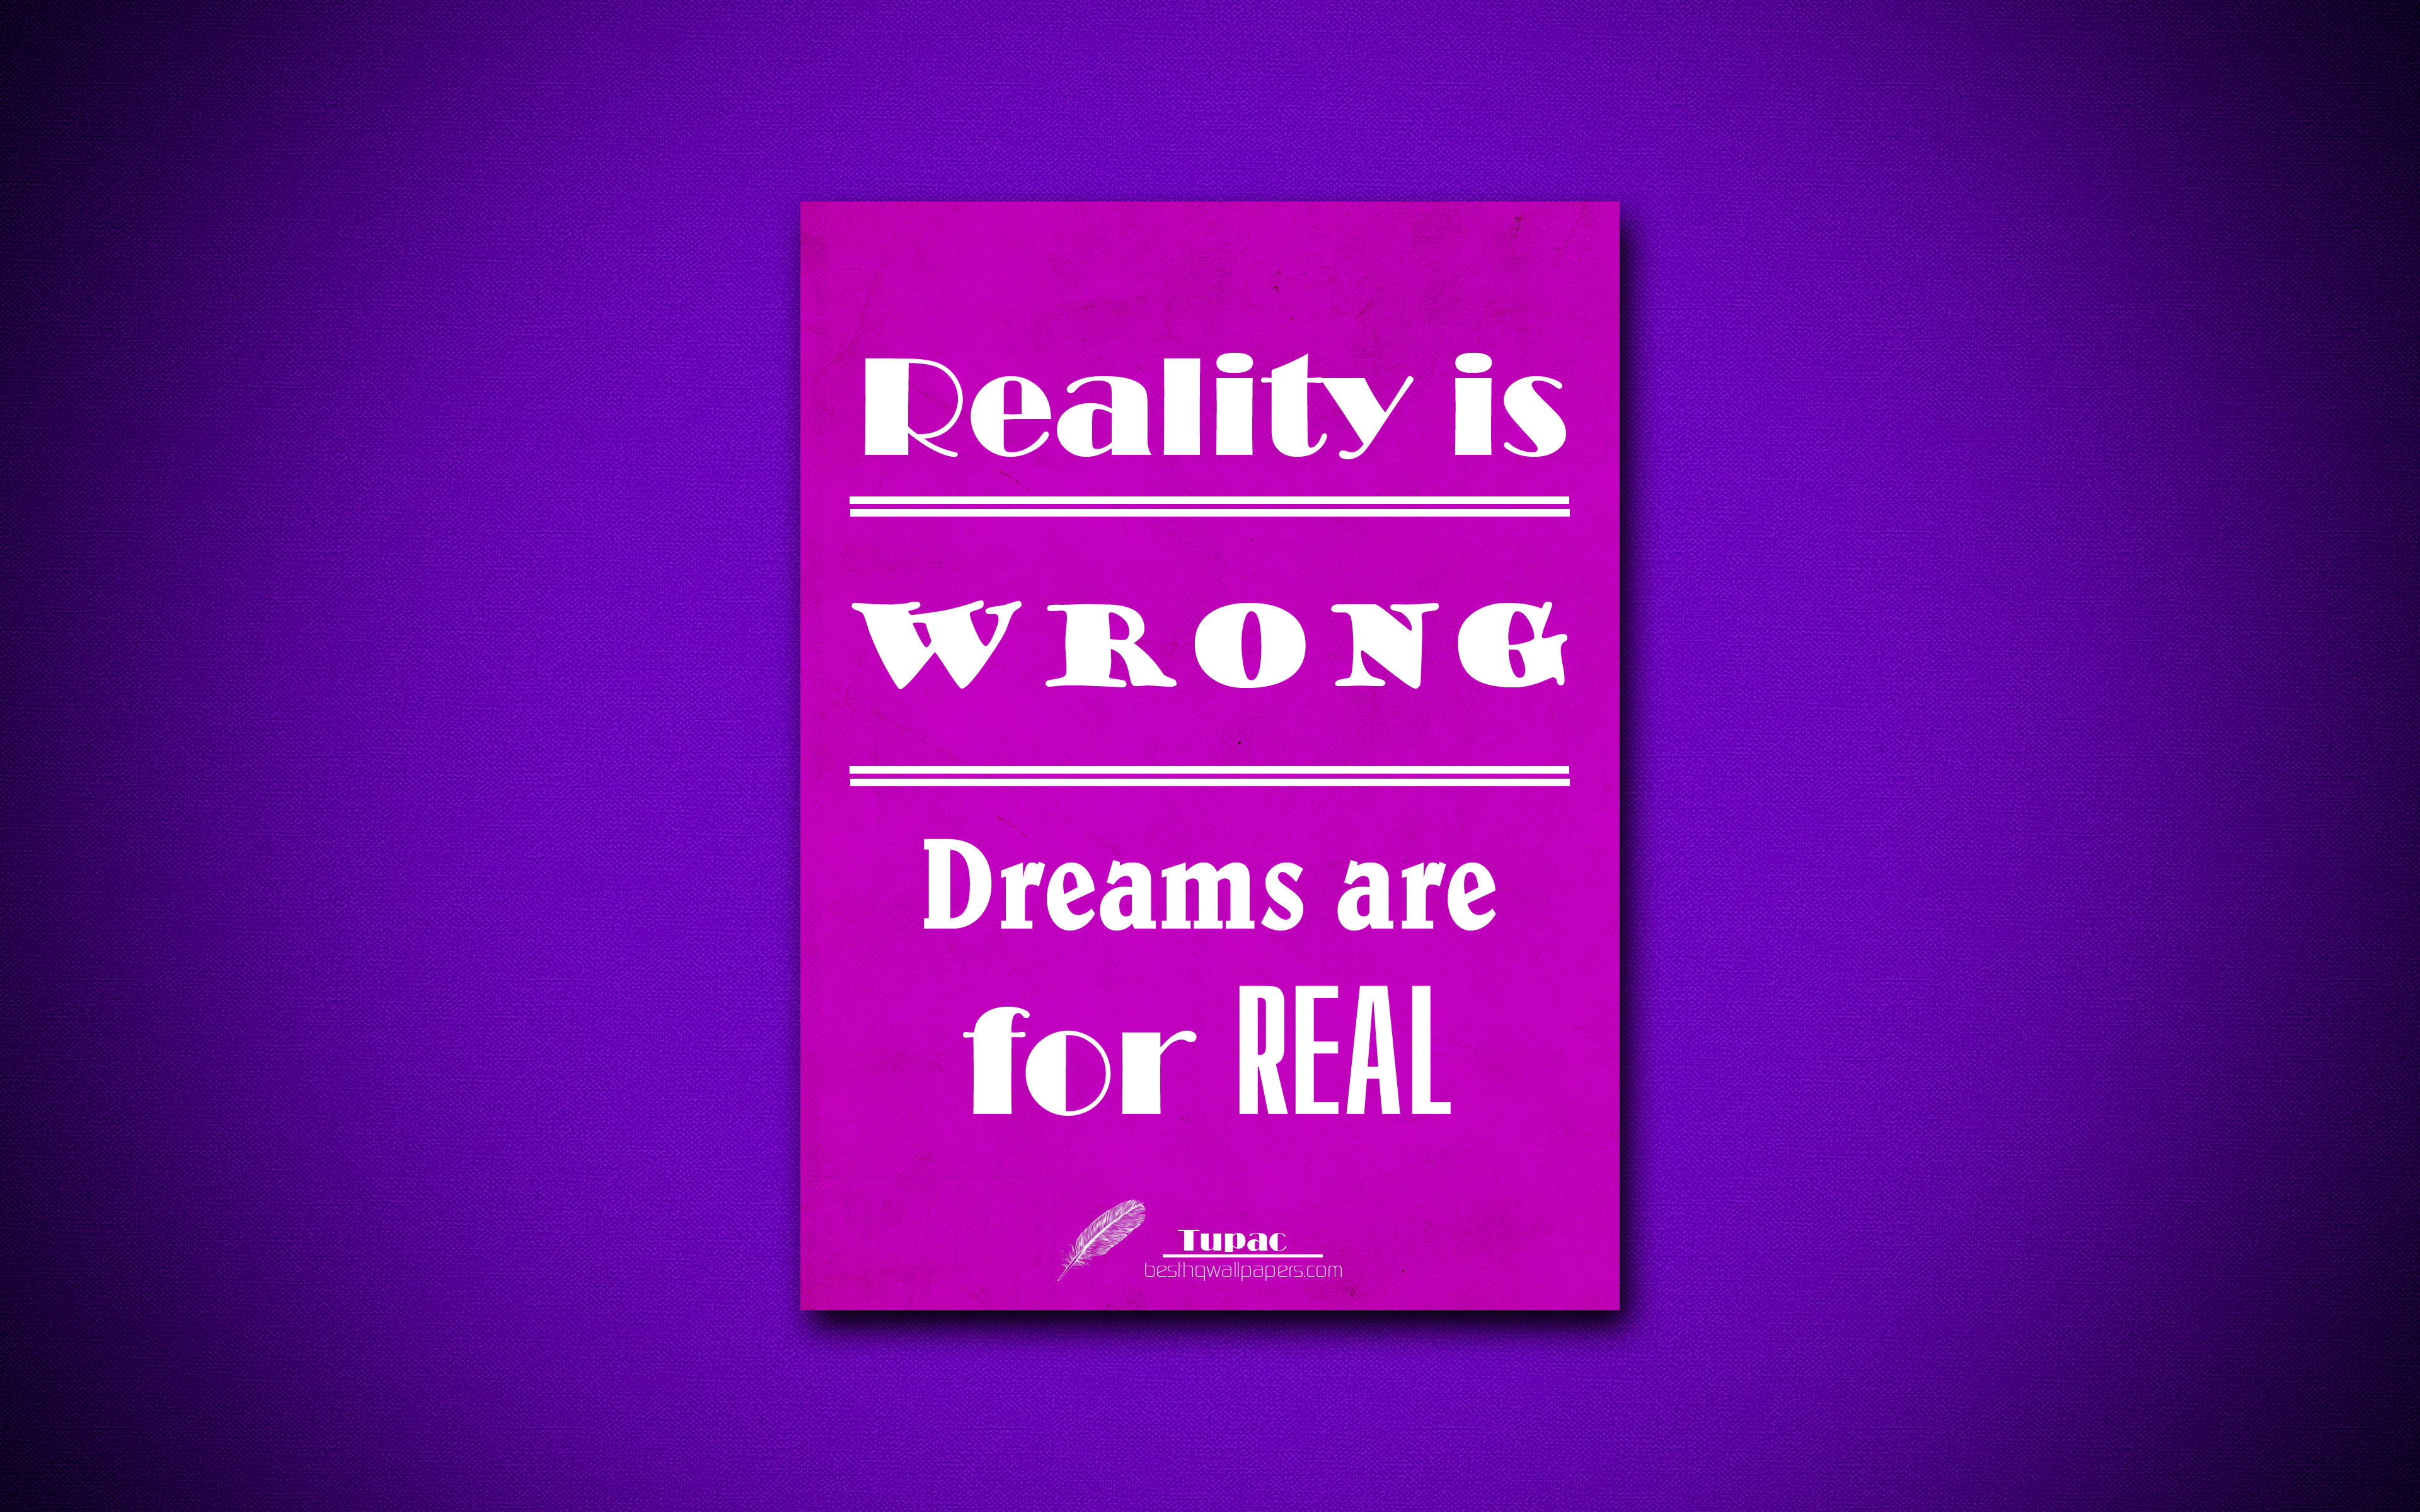 4k, Reality Is Wrong Dreams Are For Real, Tupac, Quotes - Poverty In The World - HD Wallpaper